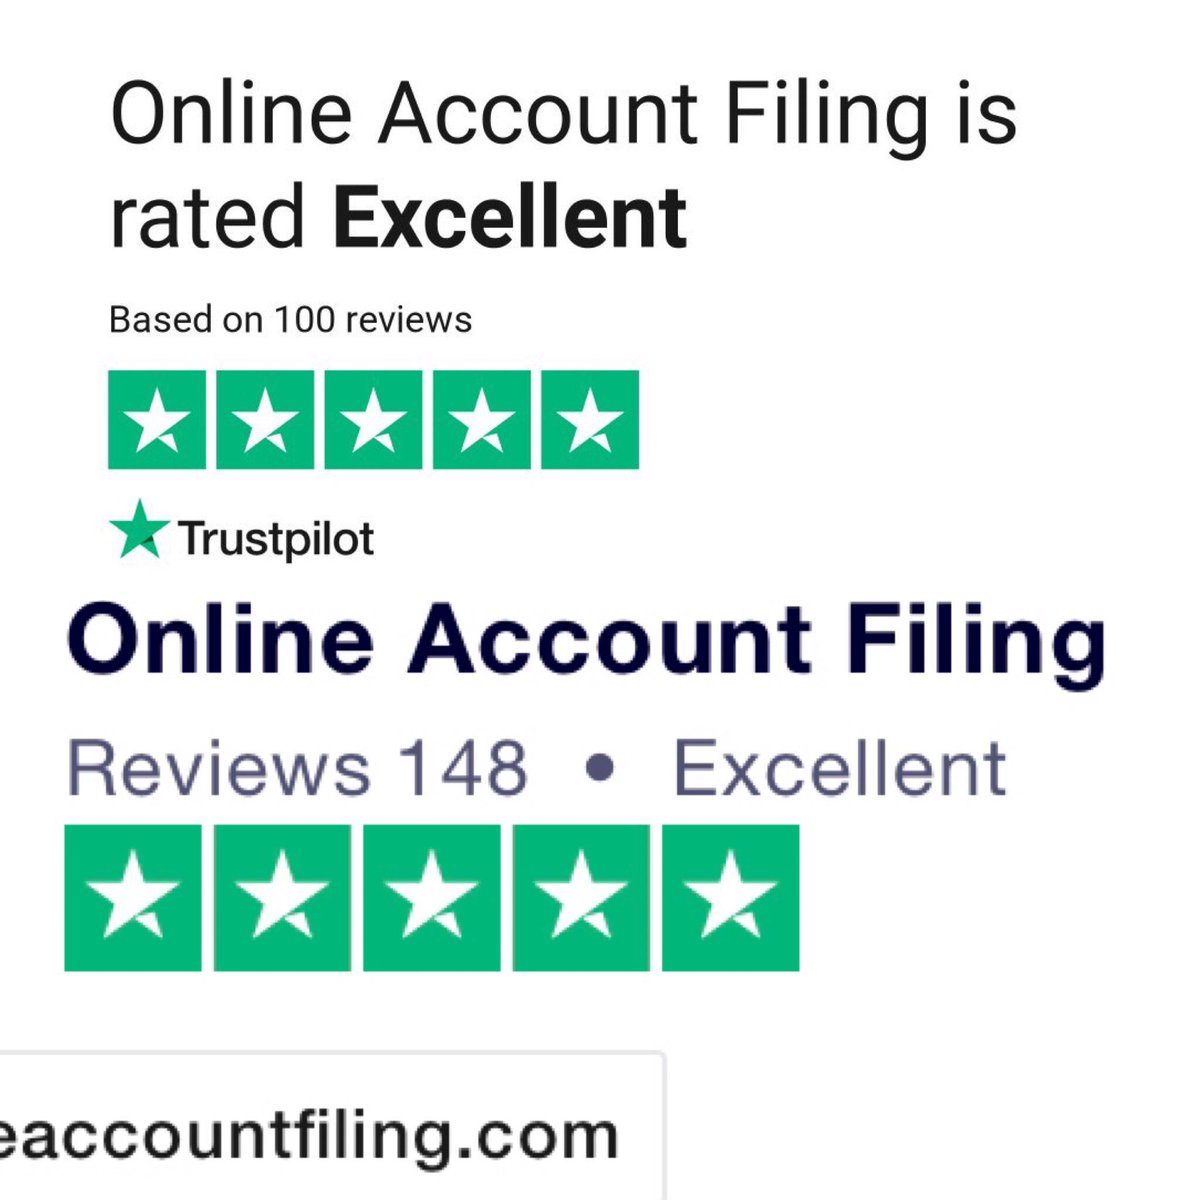 3 months challenge! What hasn`t changed is our &quot;Excellent&quot; TrustScore!   @Trustpilot  #3usiness #motivation #reviews<br>http://pic.twitter.com/F3Nv8moip8